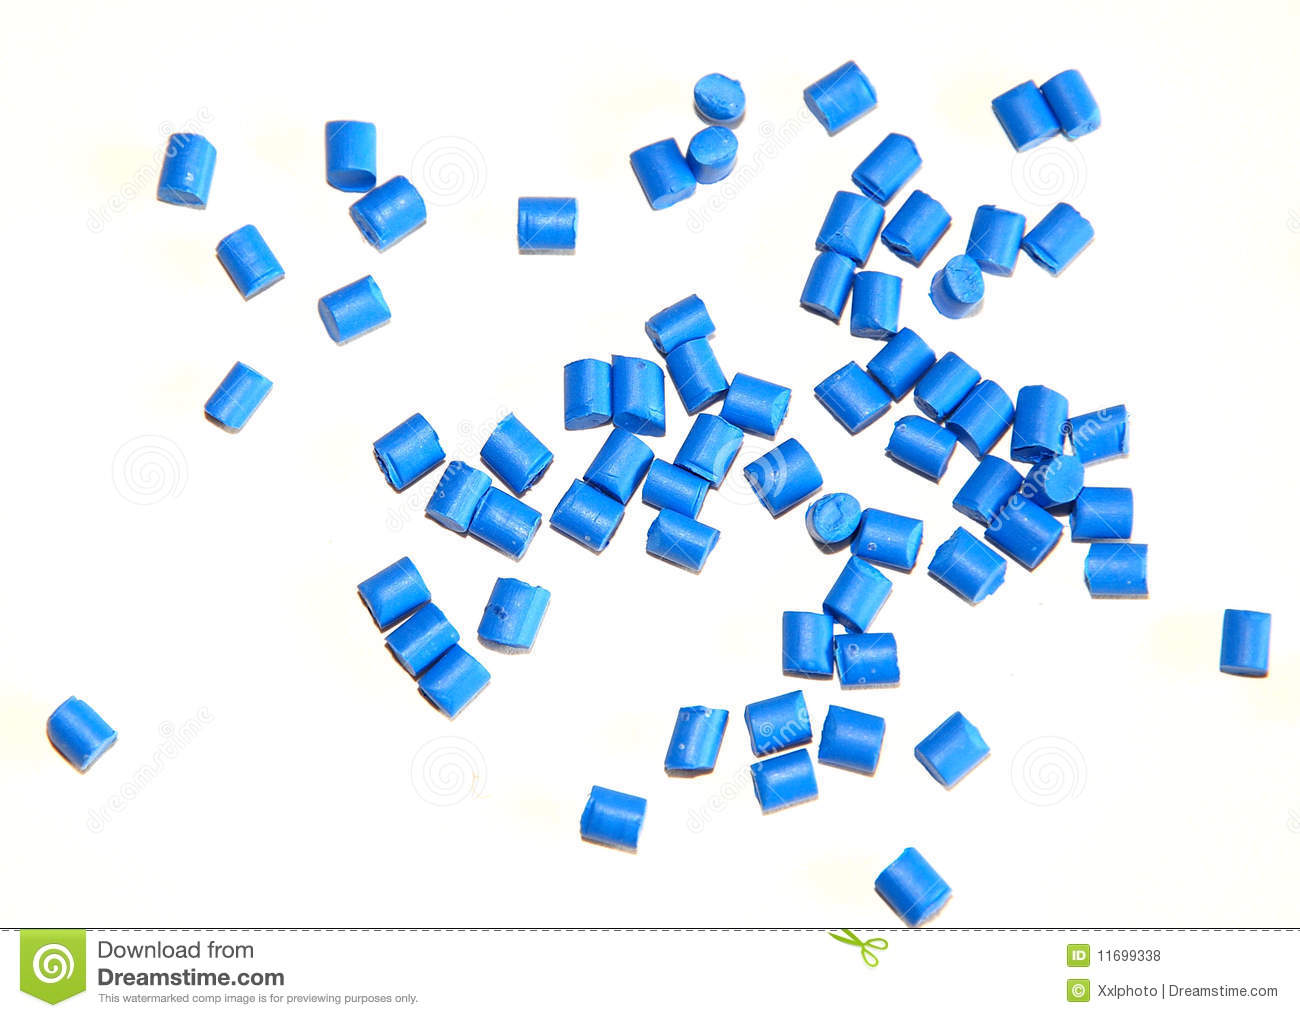 Blue thermoplastic resin